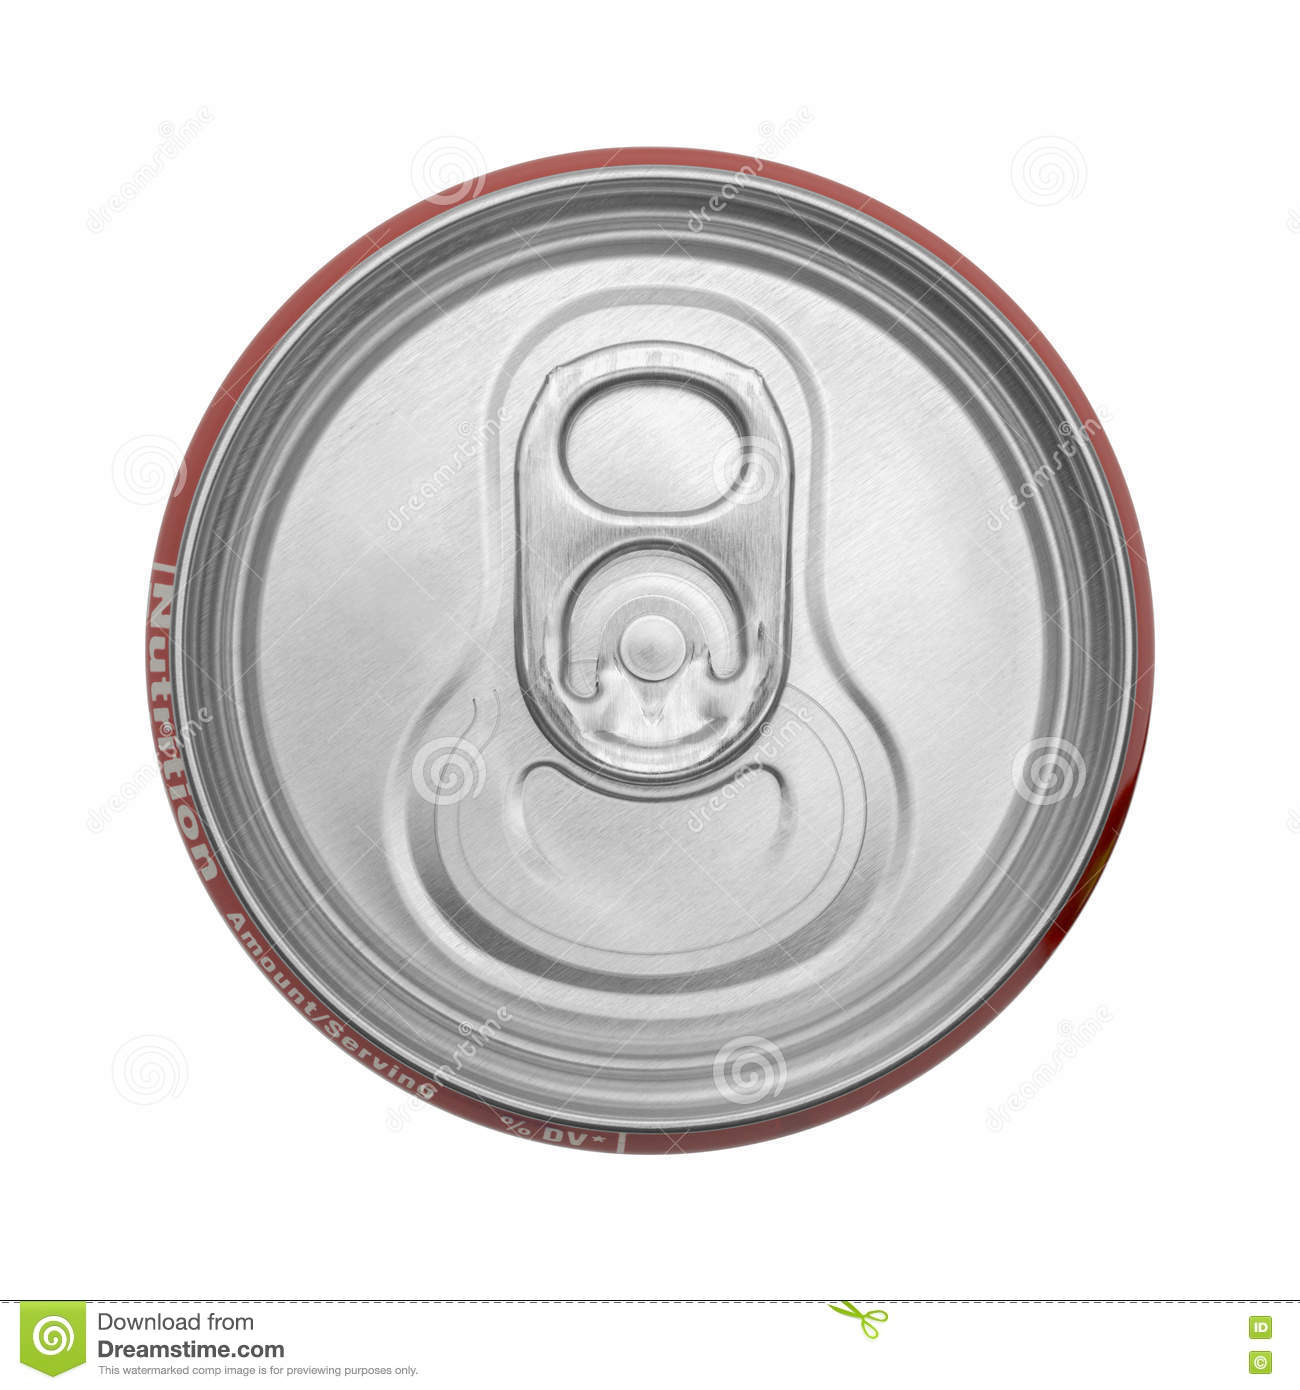 Soda Can Top Stock Image. Image Of Object, Canister